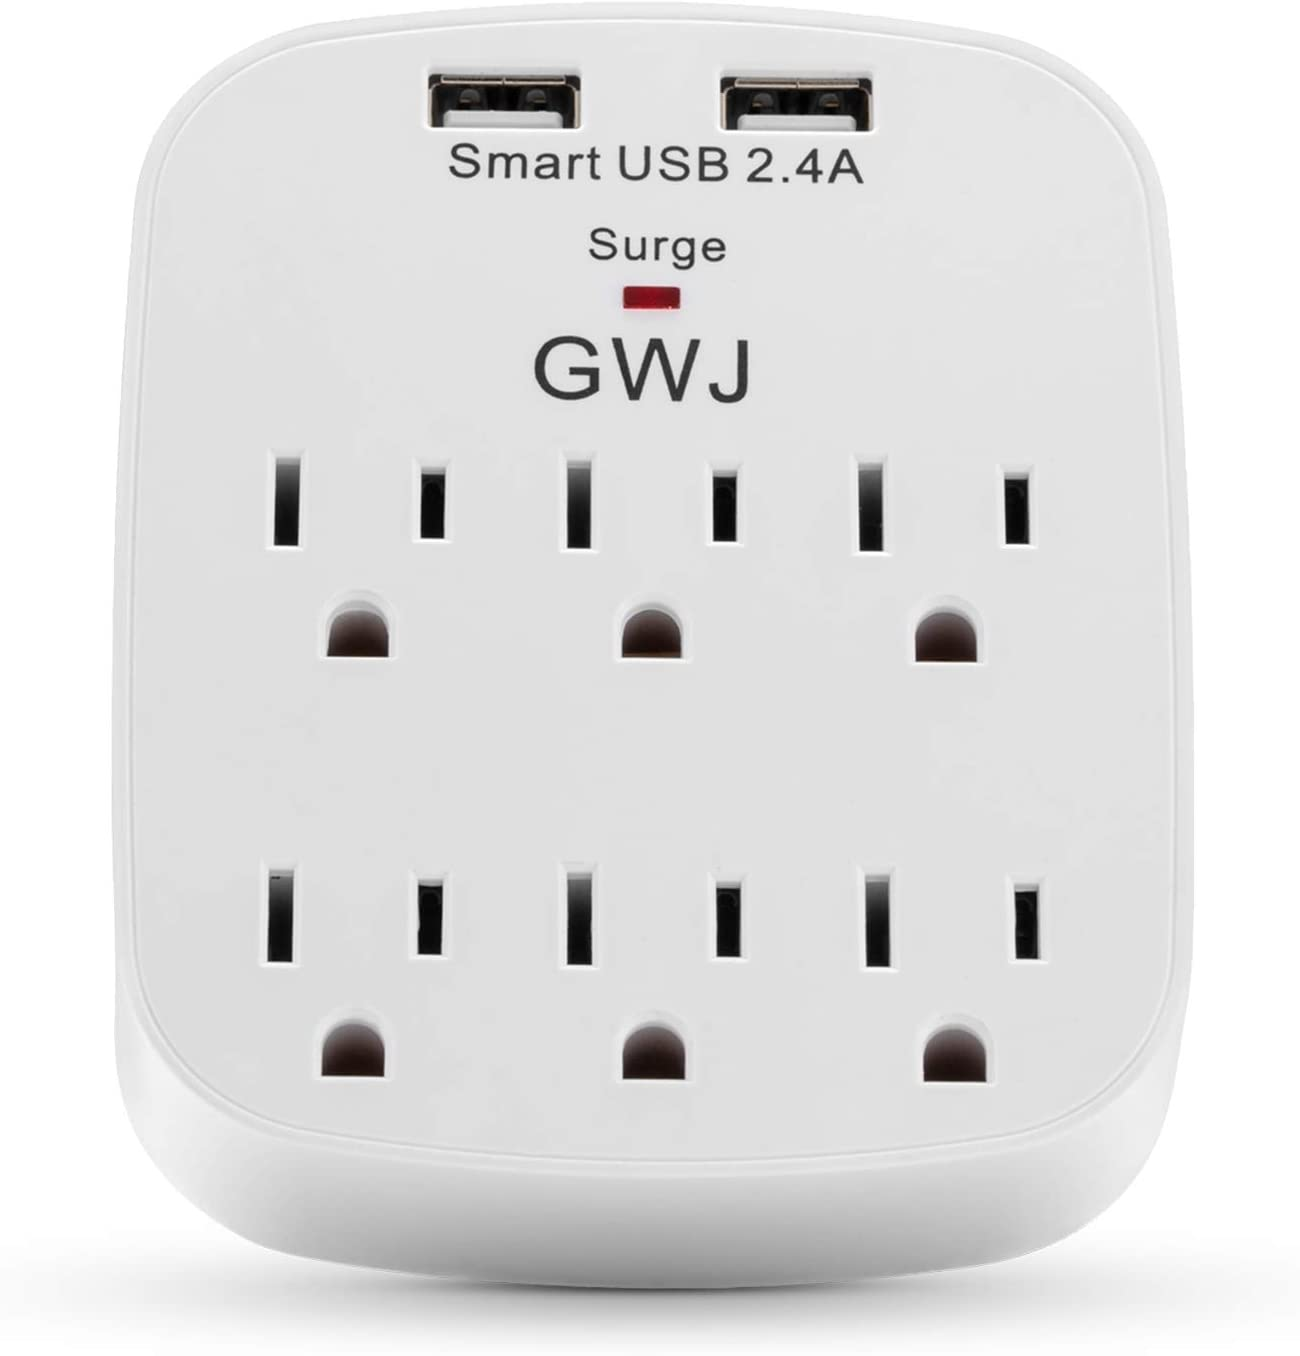 GWJ Wall Surge Protector, USB Charger with 2 USB Charging Ports(Smart 2.4A Total), 6-Outlet Extender for Your Home, School, Office, White, UL Listed